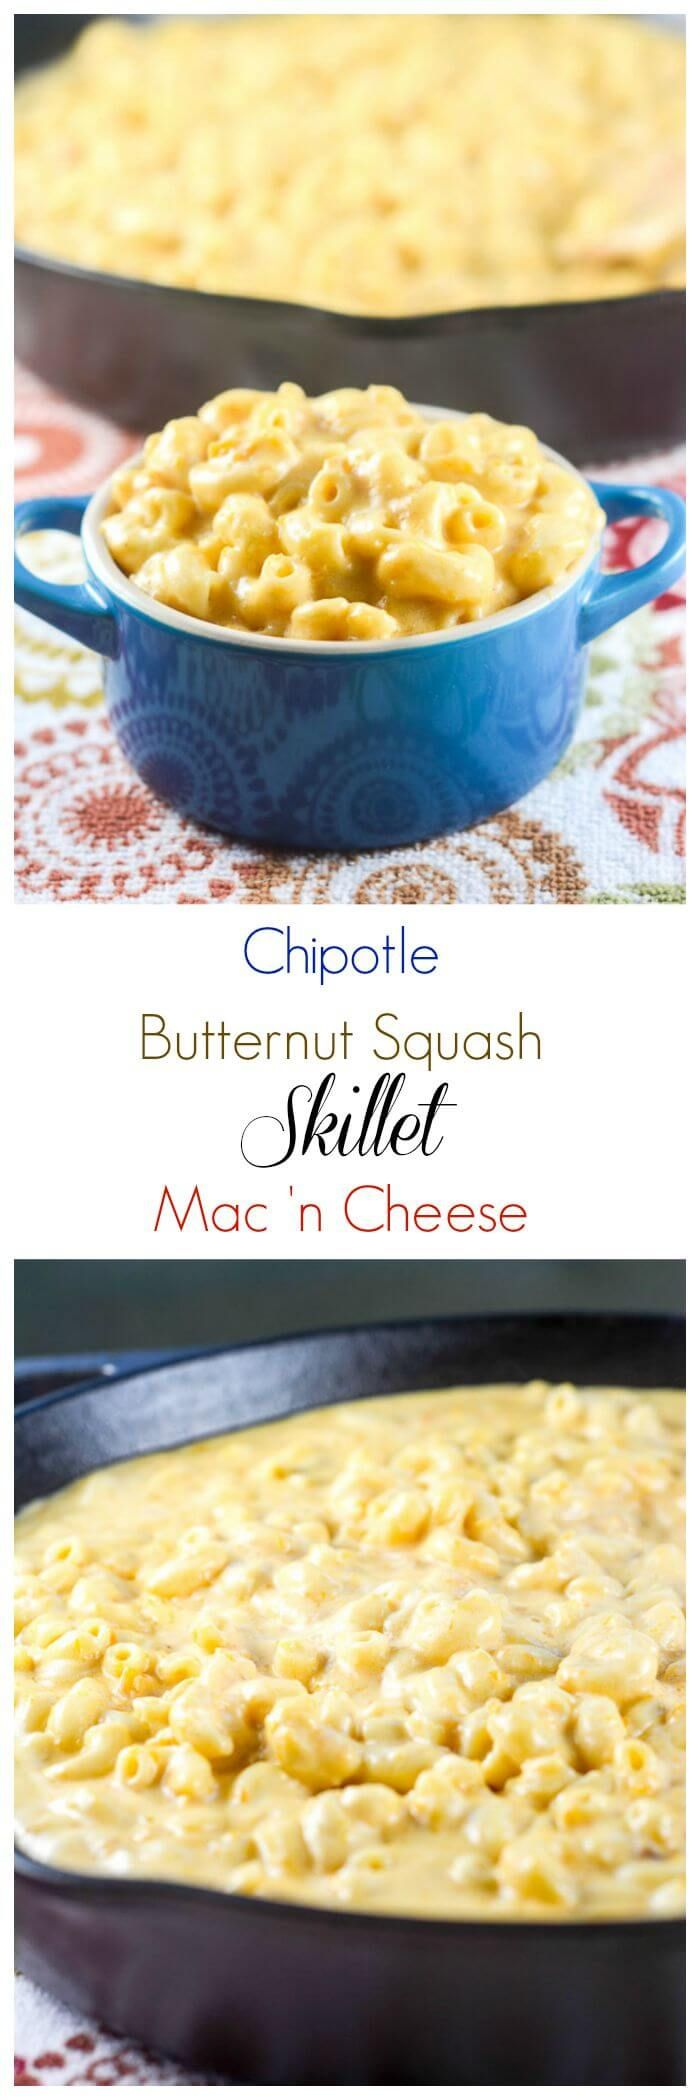 Chipotle Butternut Squash Skillet Mac 'n Cheese is a quick and easy ...